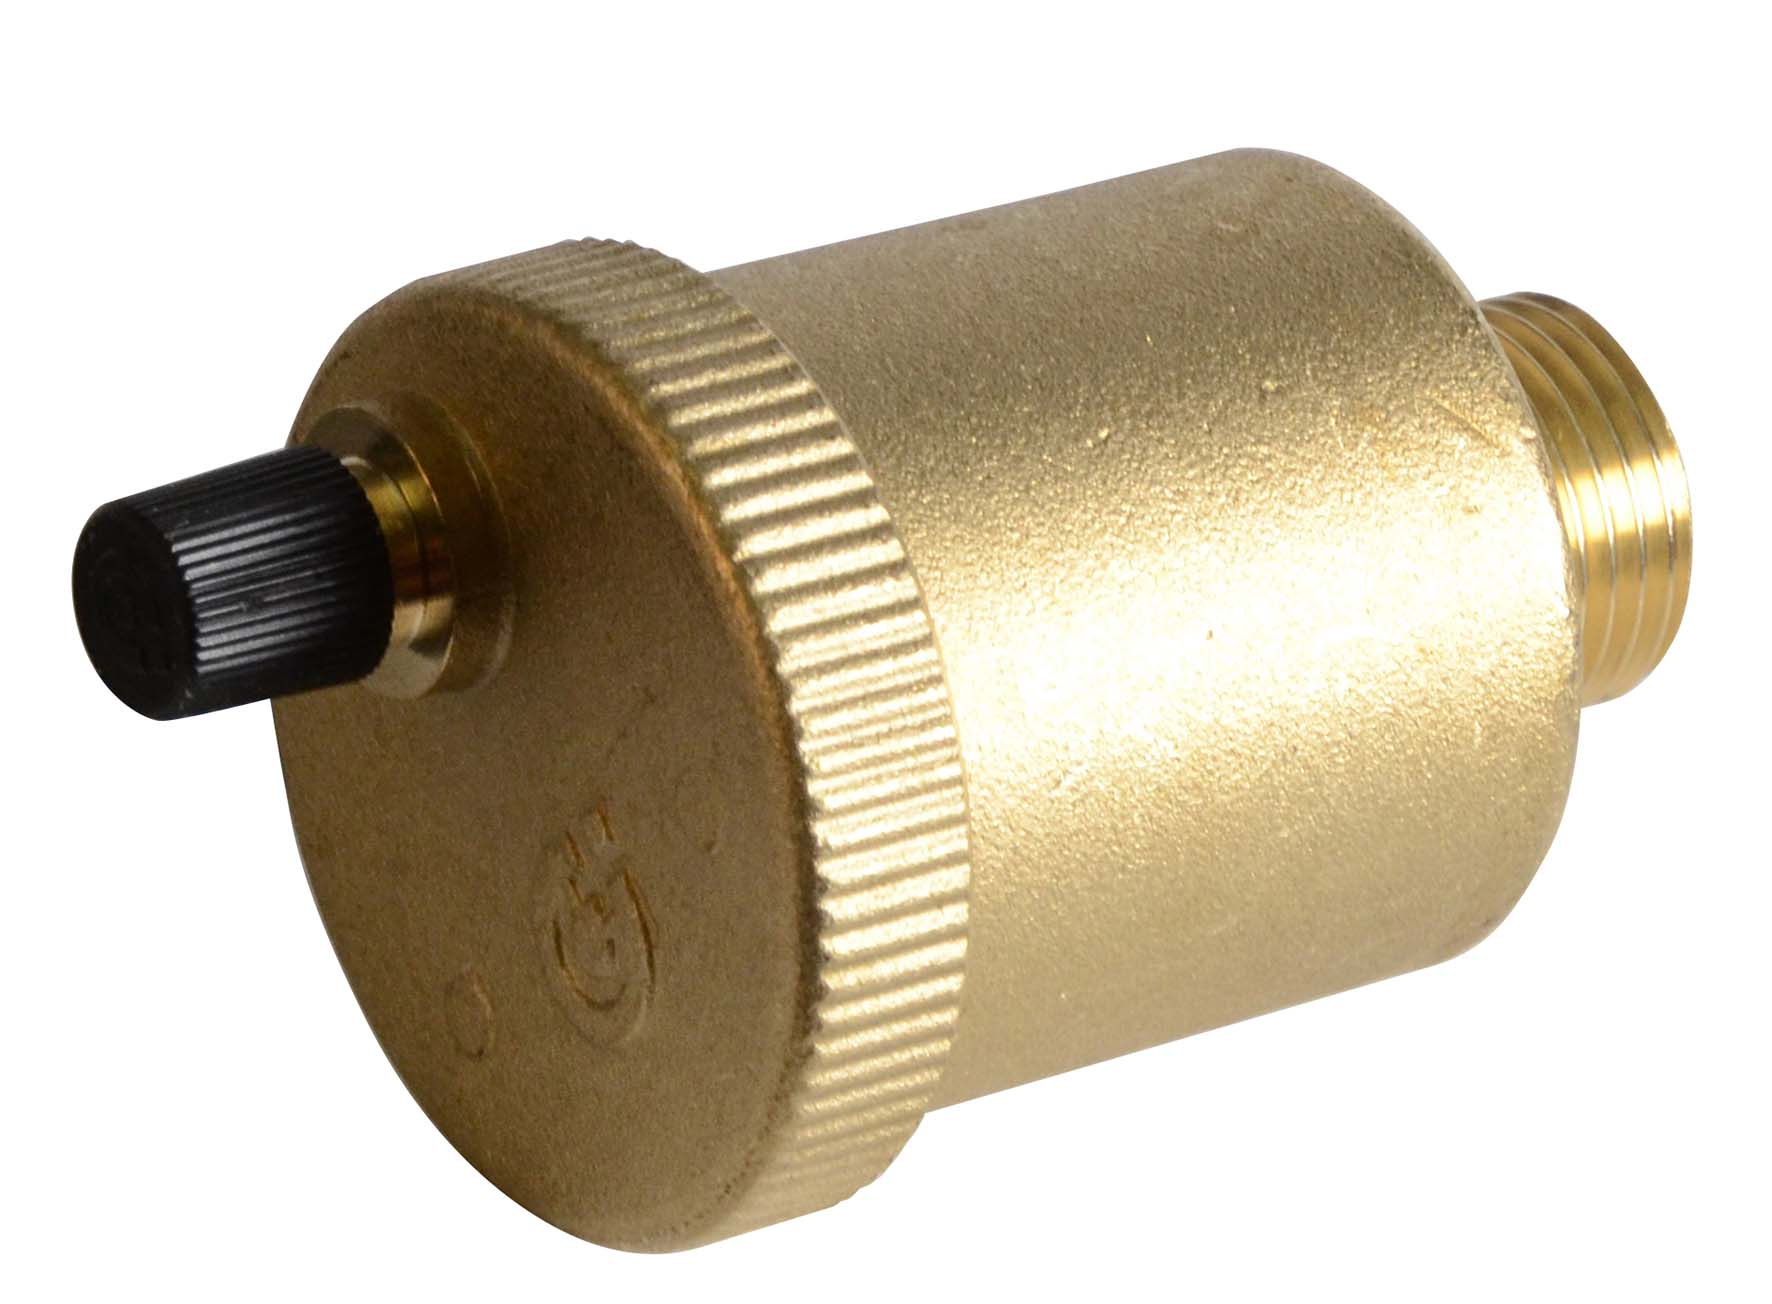 Air Vent And Air Relief Valve Boiler Spare Parts